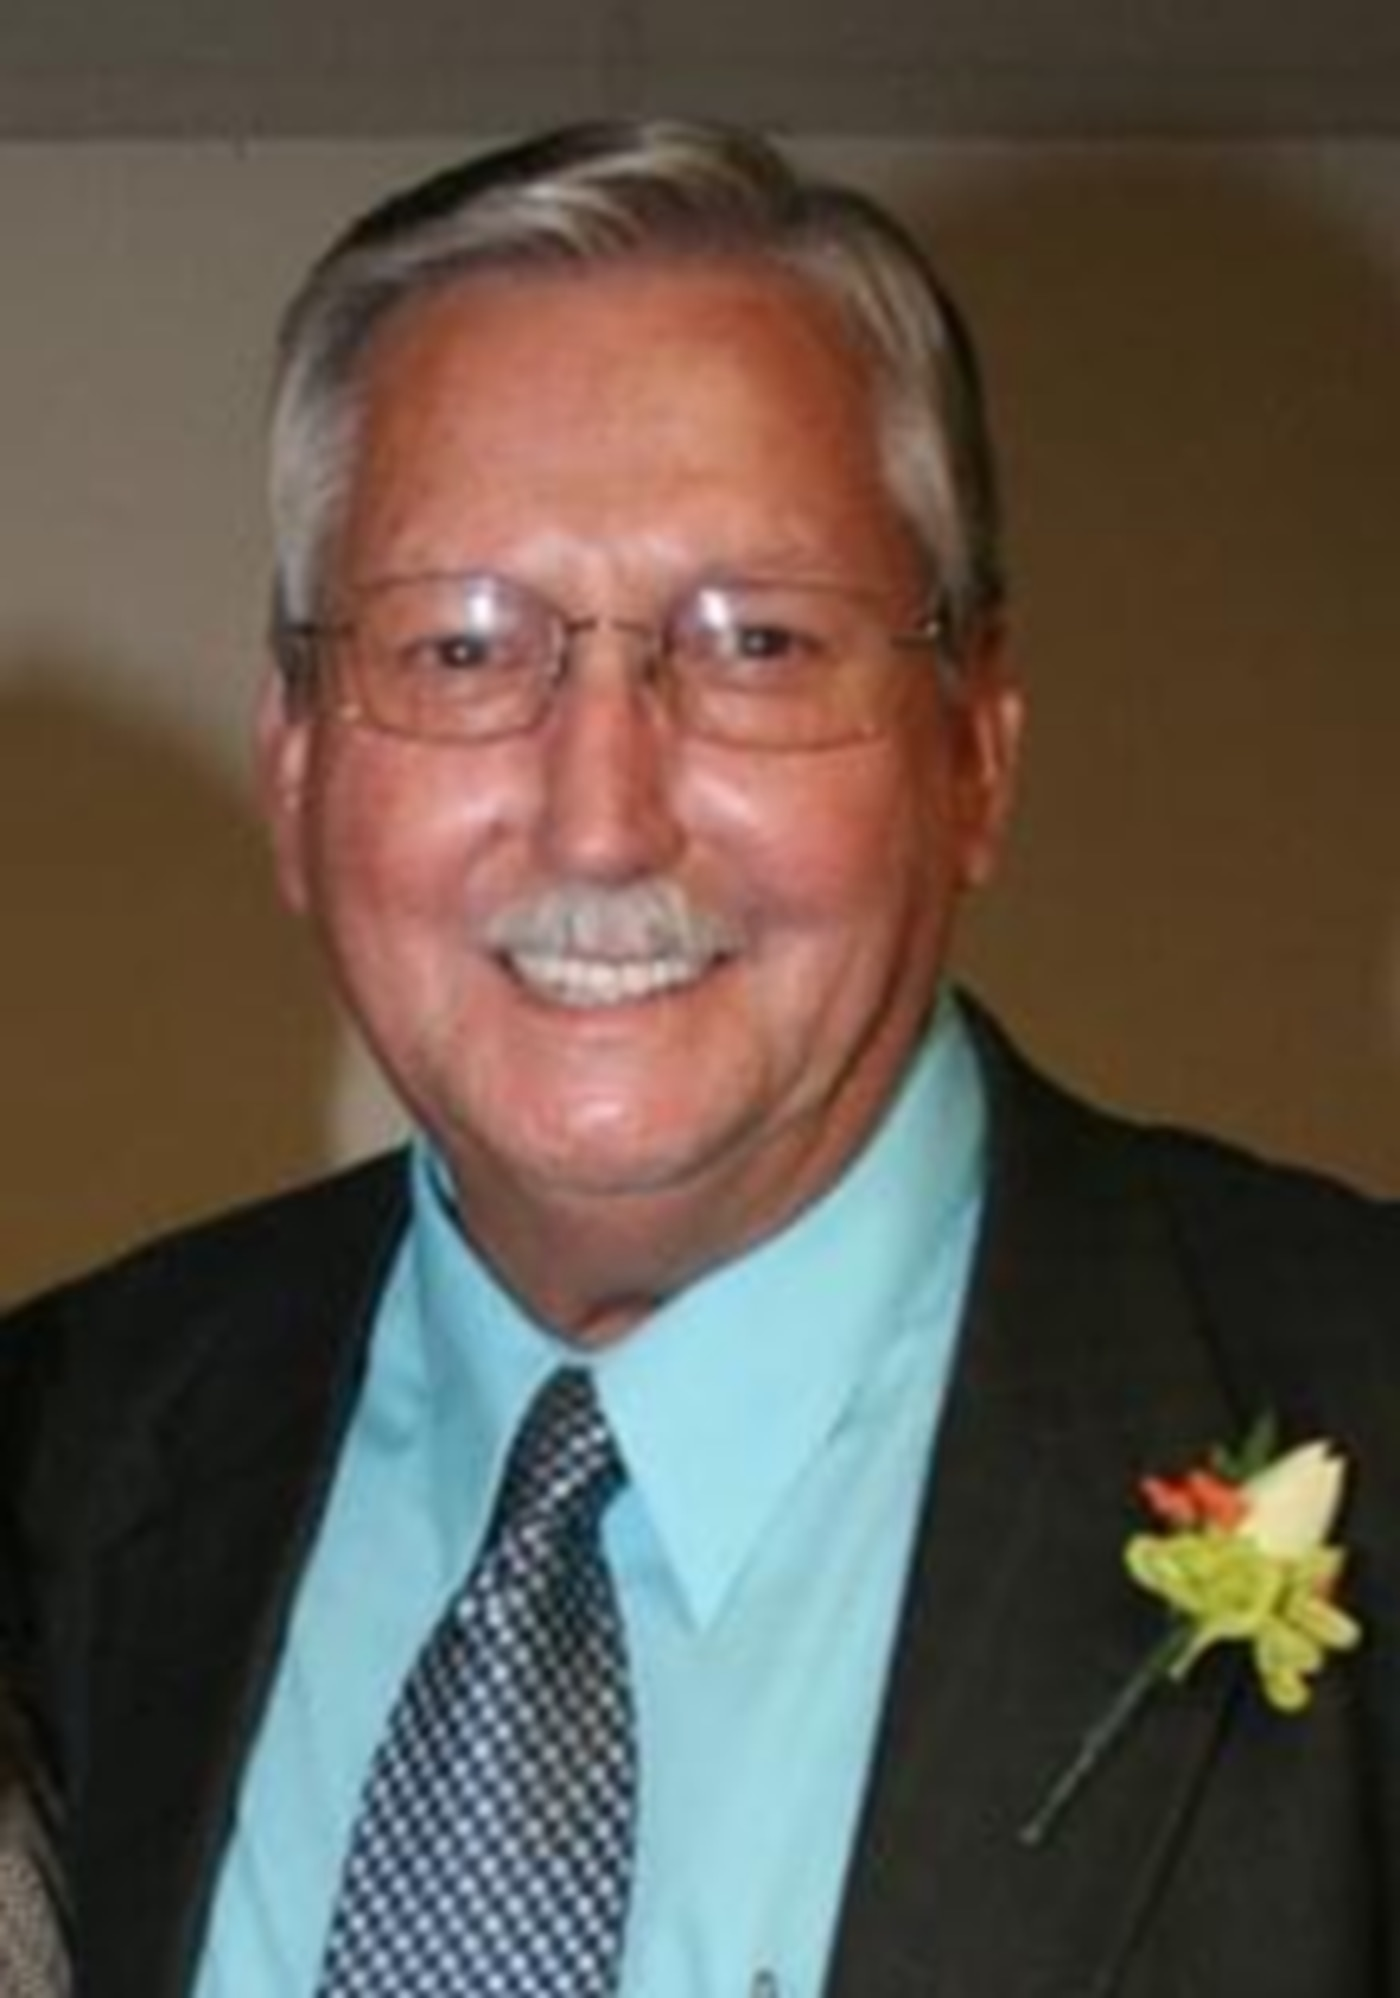 Bro. Allen Smith died from COVID-19 after being diagnosed with the virus earlier this month.